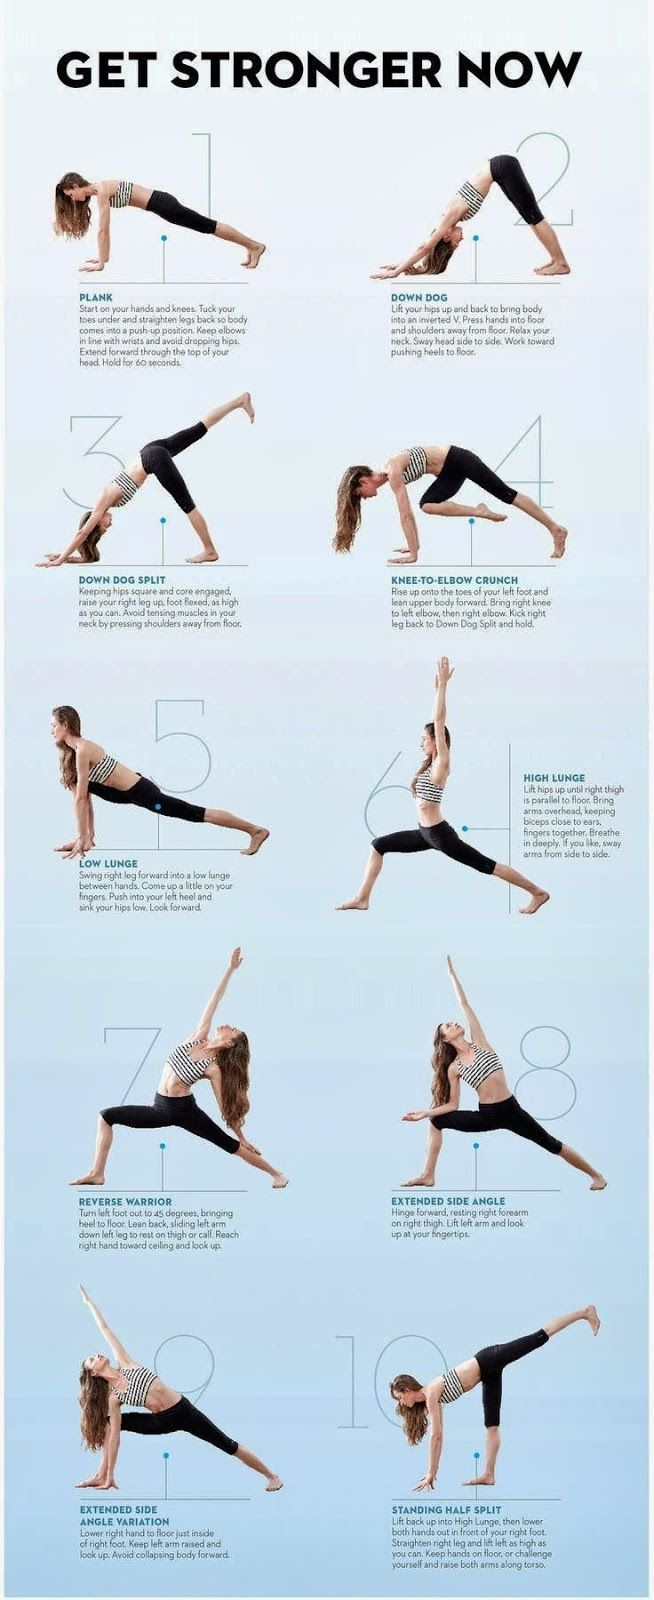 Yoga poses and stretches. I think yoga will be a benefit for doing in between…